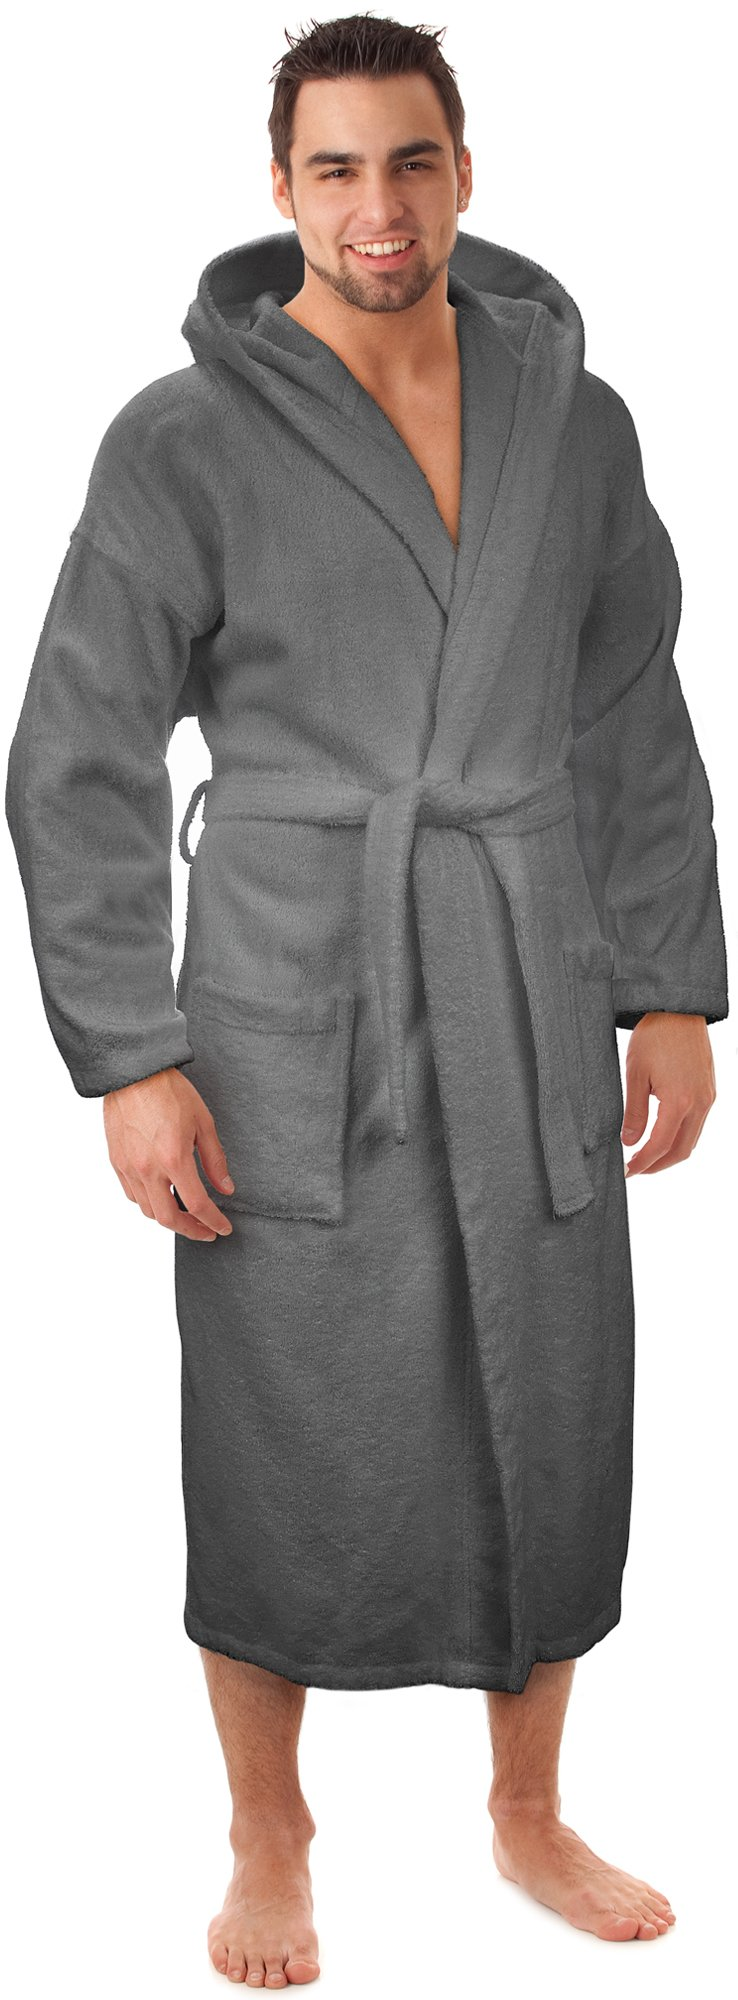 Hooded Terry Bathrobe Made in Turkey, Gray, XX-Large